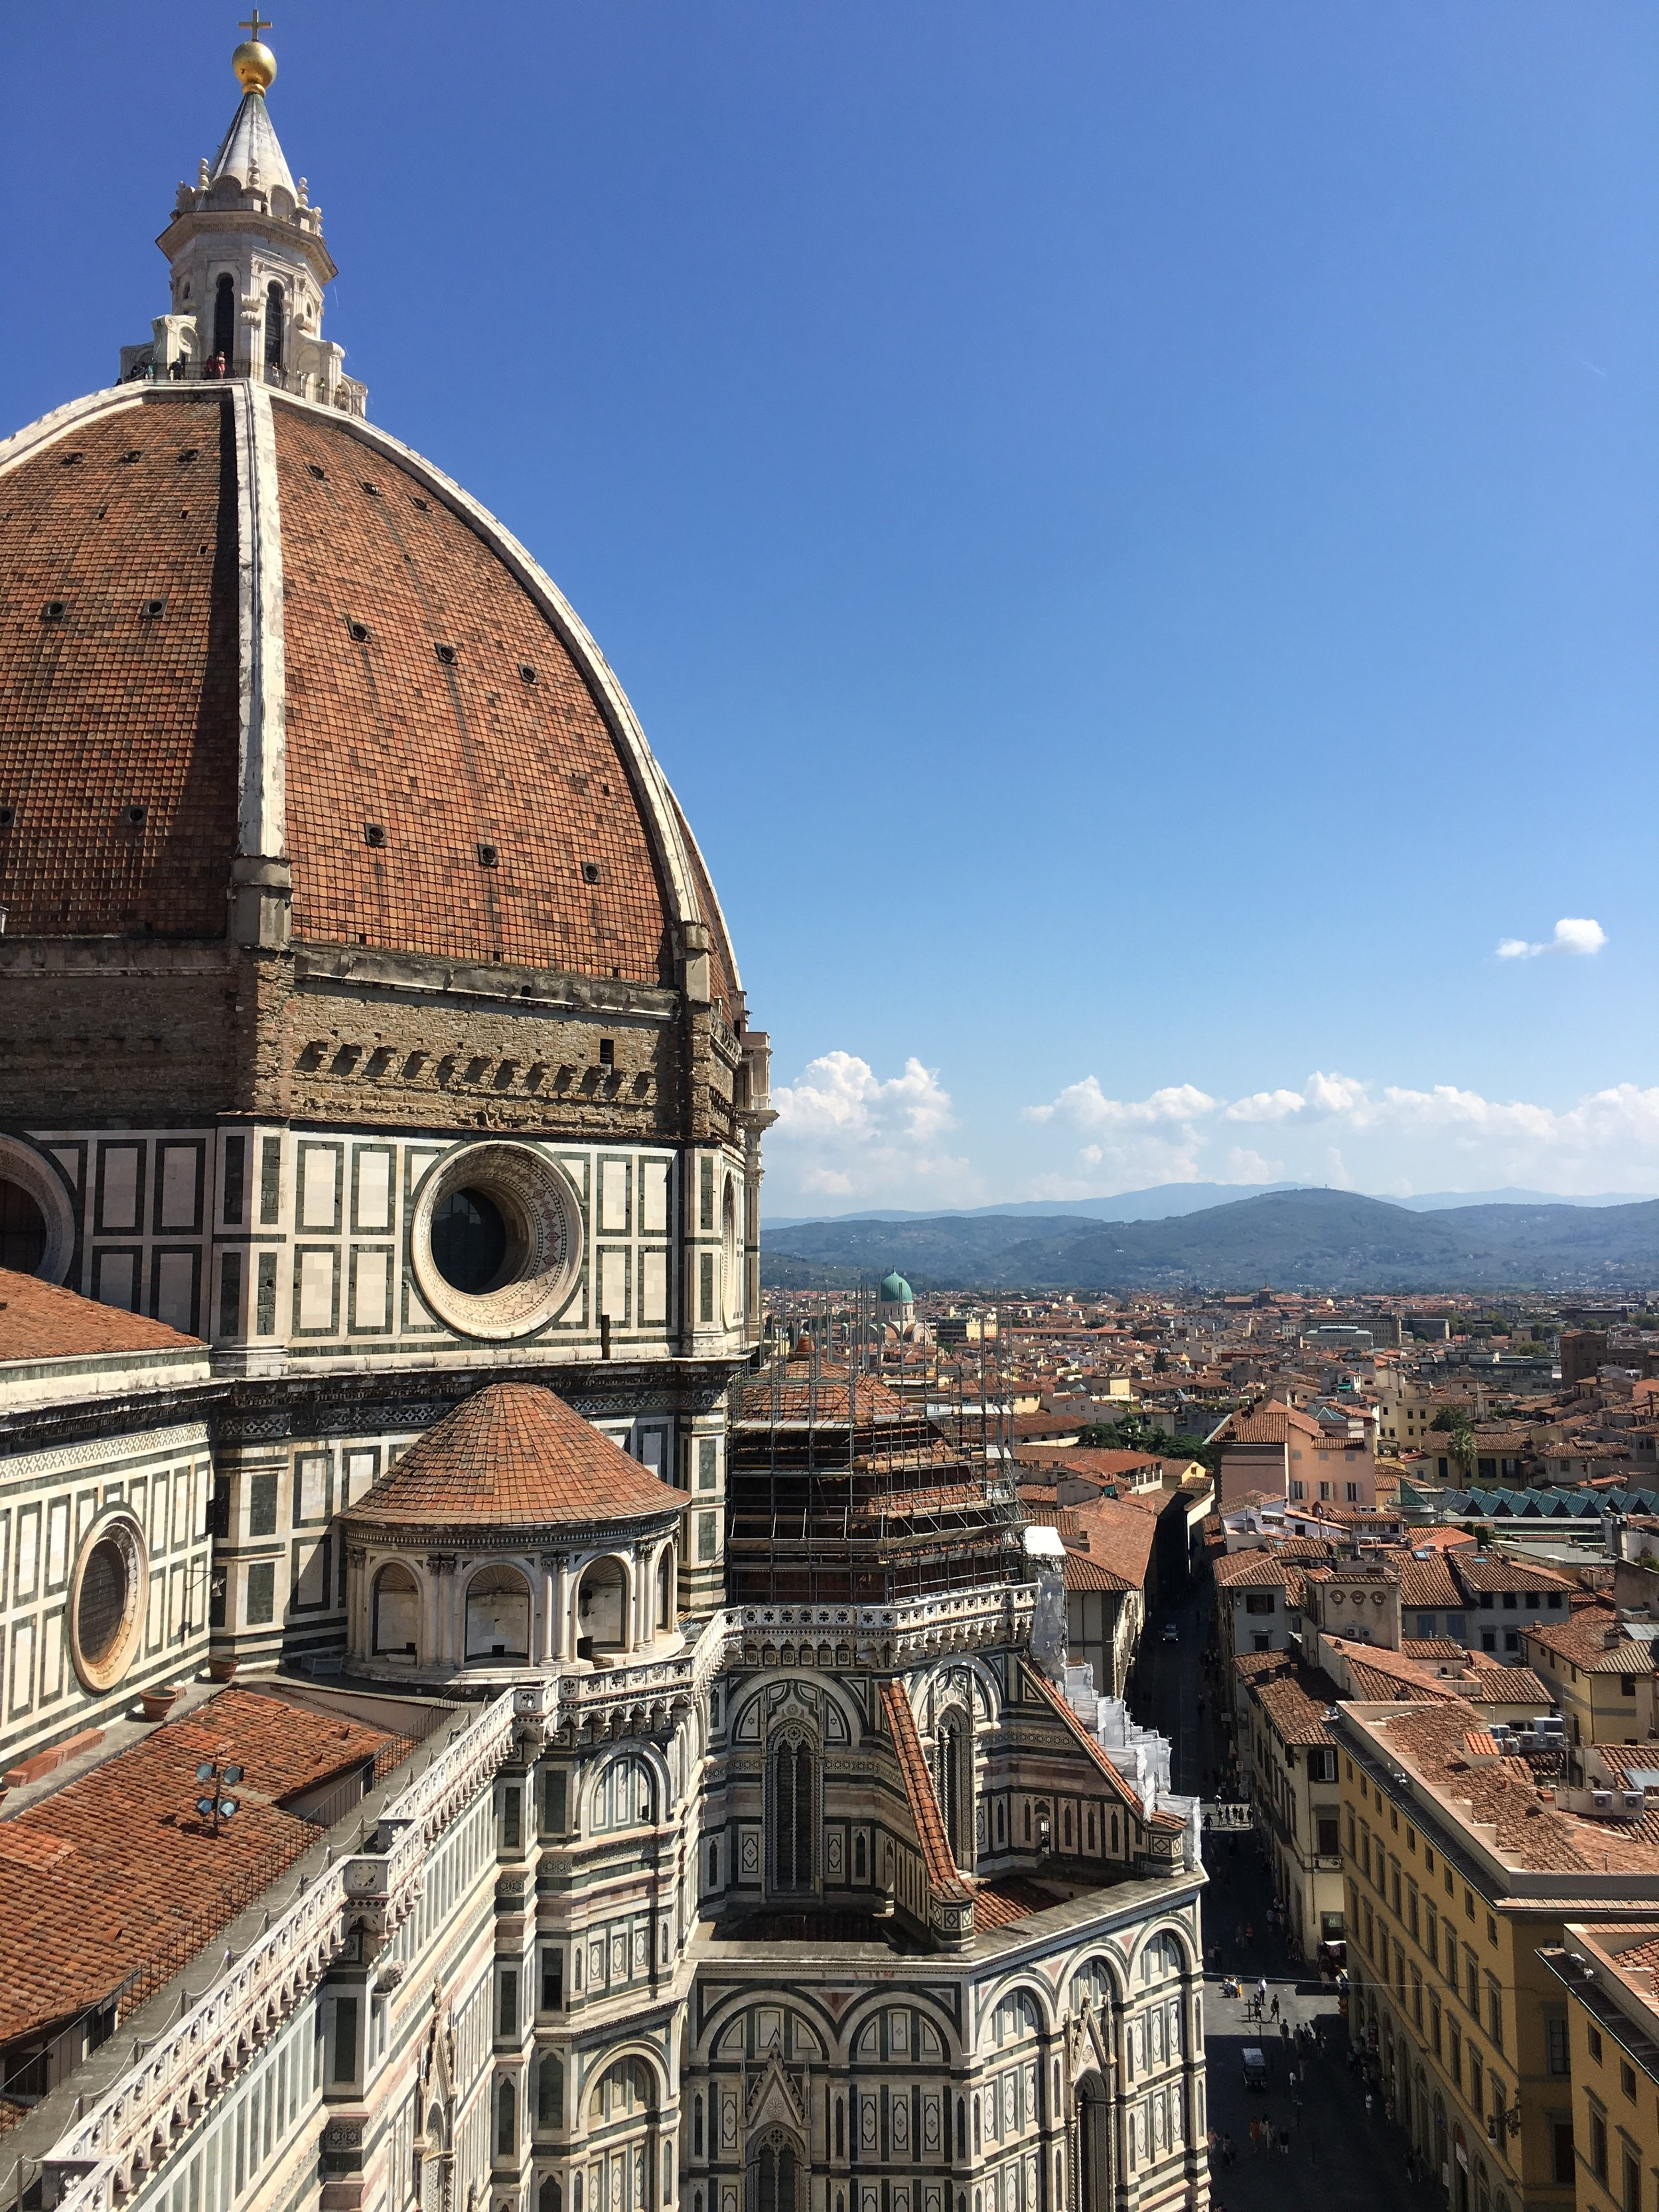 Il Duomo in Florence - taken with an iPhone 6s Plus after climbing several hundred stone steps and fighting back a panic attack inside the Tower. Hand-held, ISO 25, f/2.2, 1/1972